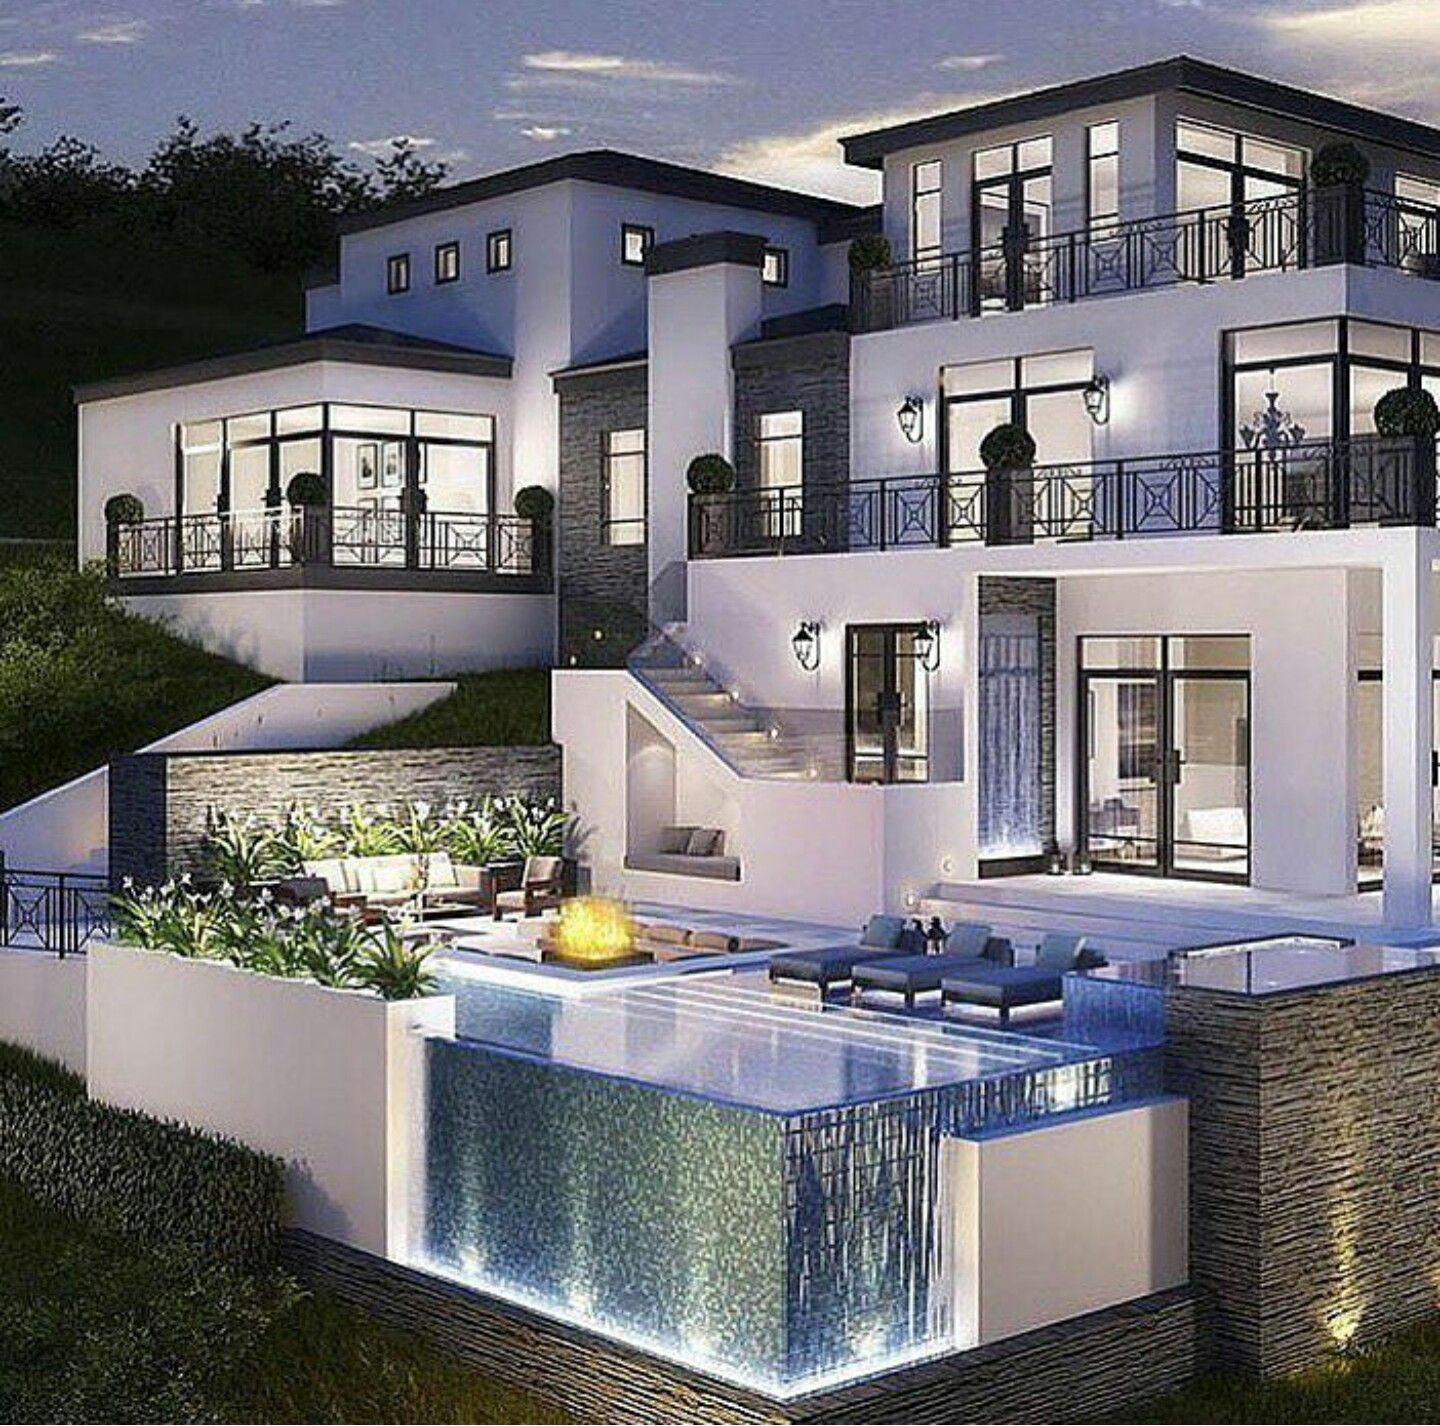 Modern Luxury House Design New Delhi Residence Pictures: Amazing Los Angeles Hollywood Hills Mansion With Infinity